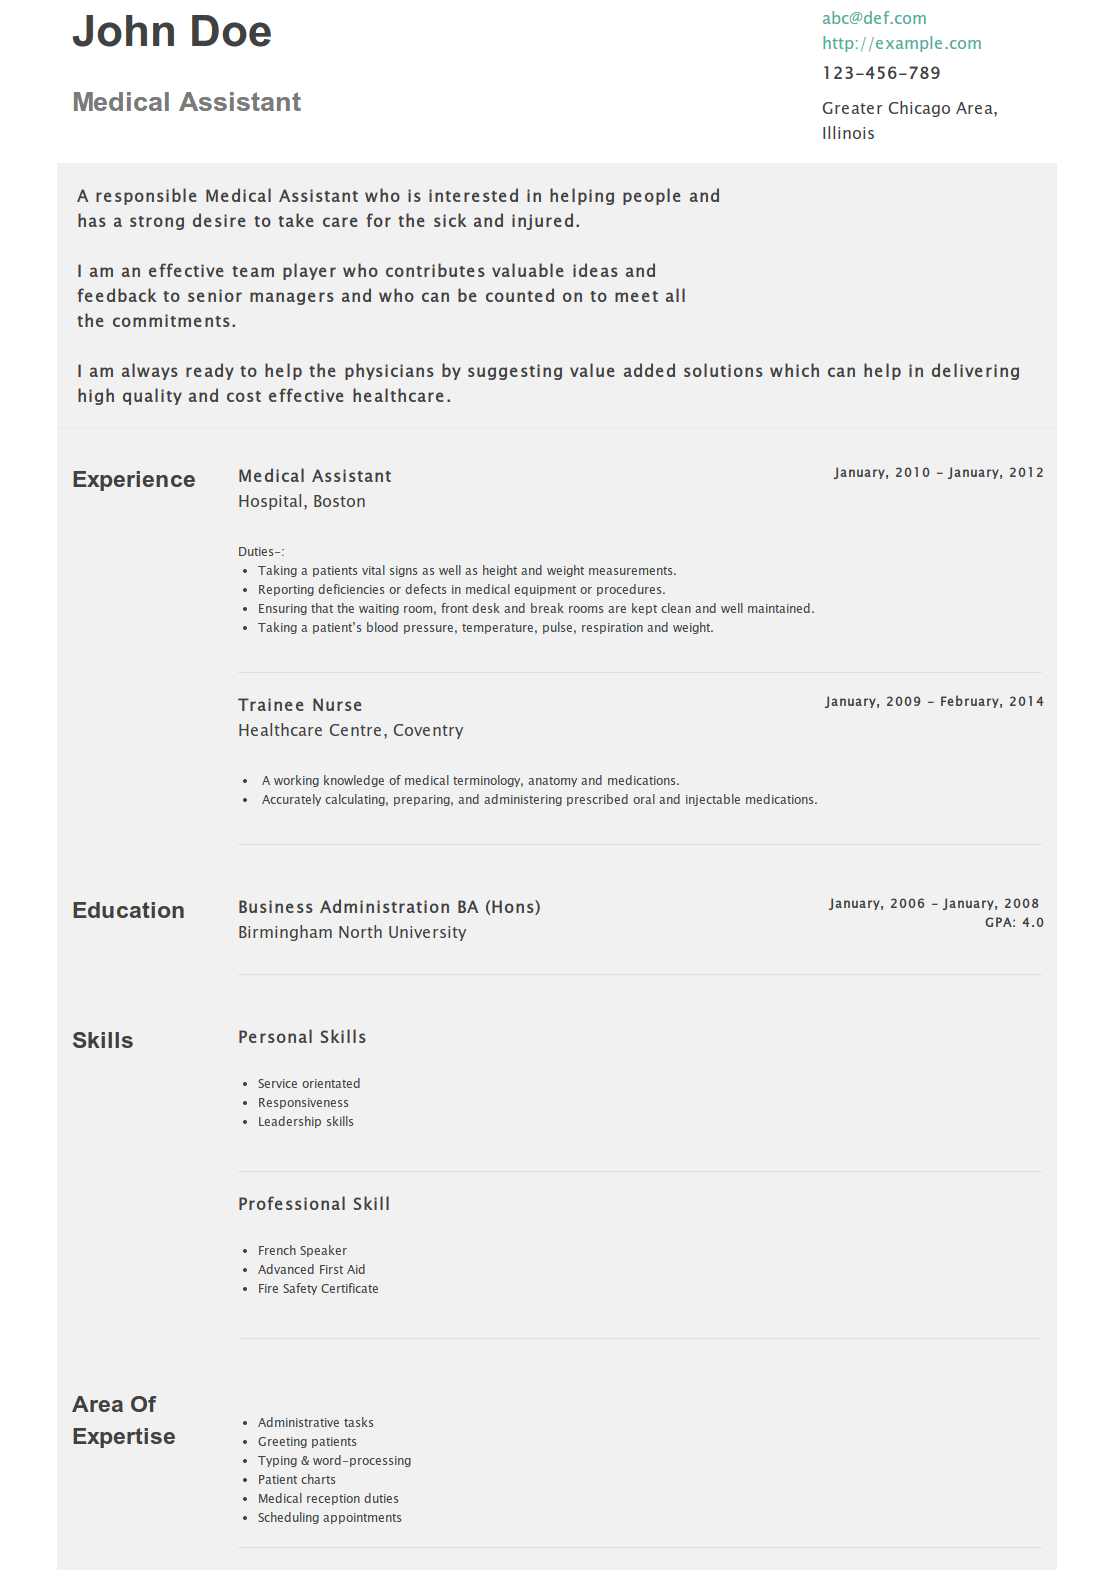 Resumes For Medical Assistants Medical Assistant Resume  Medical Assistant  Pinterest  Medical .